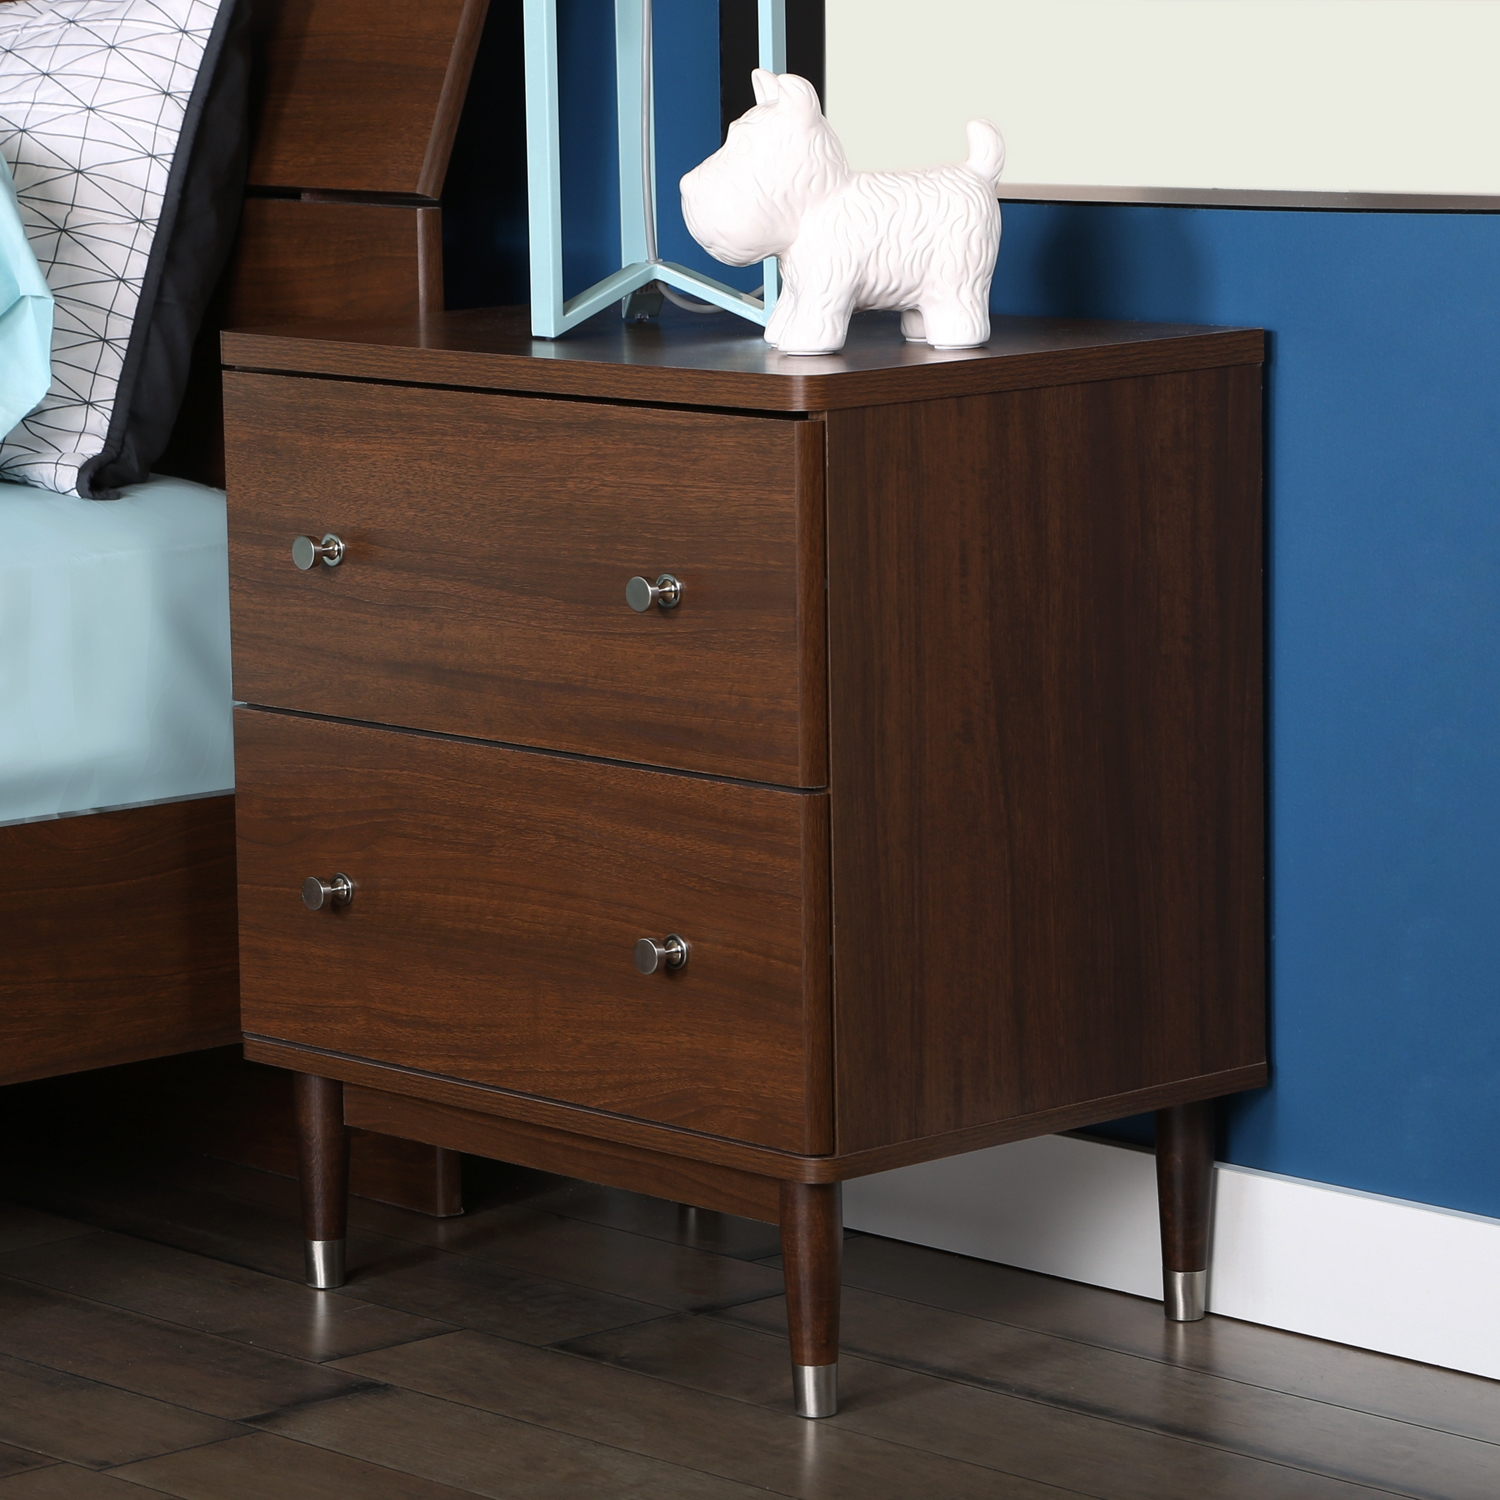 Olly 2 Drawers Nightstand - Brown Walnut - SS-3828062